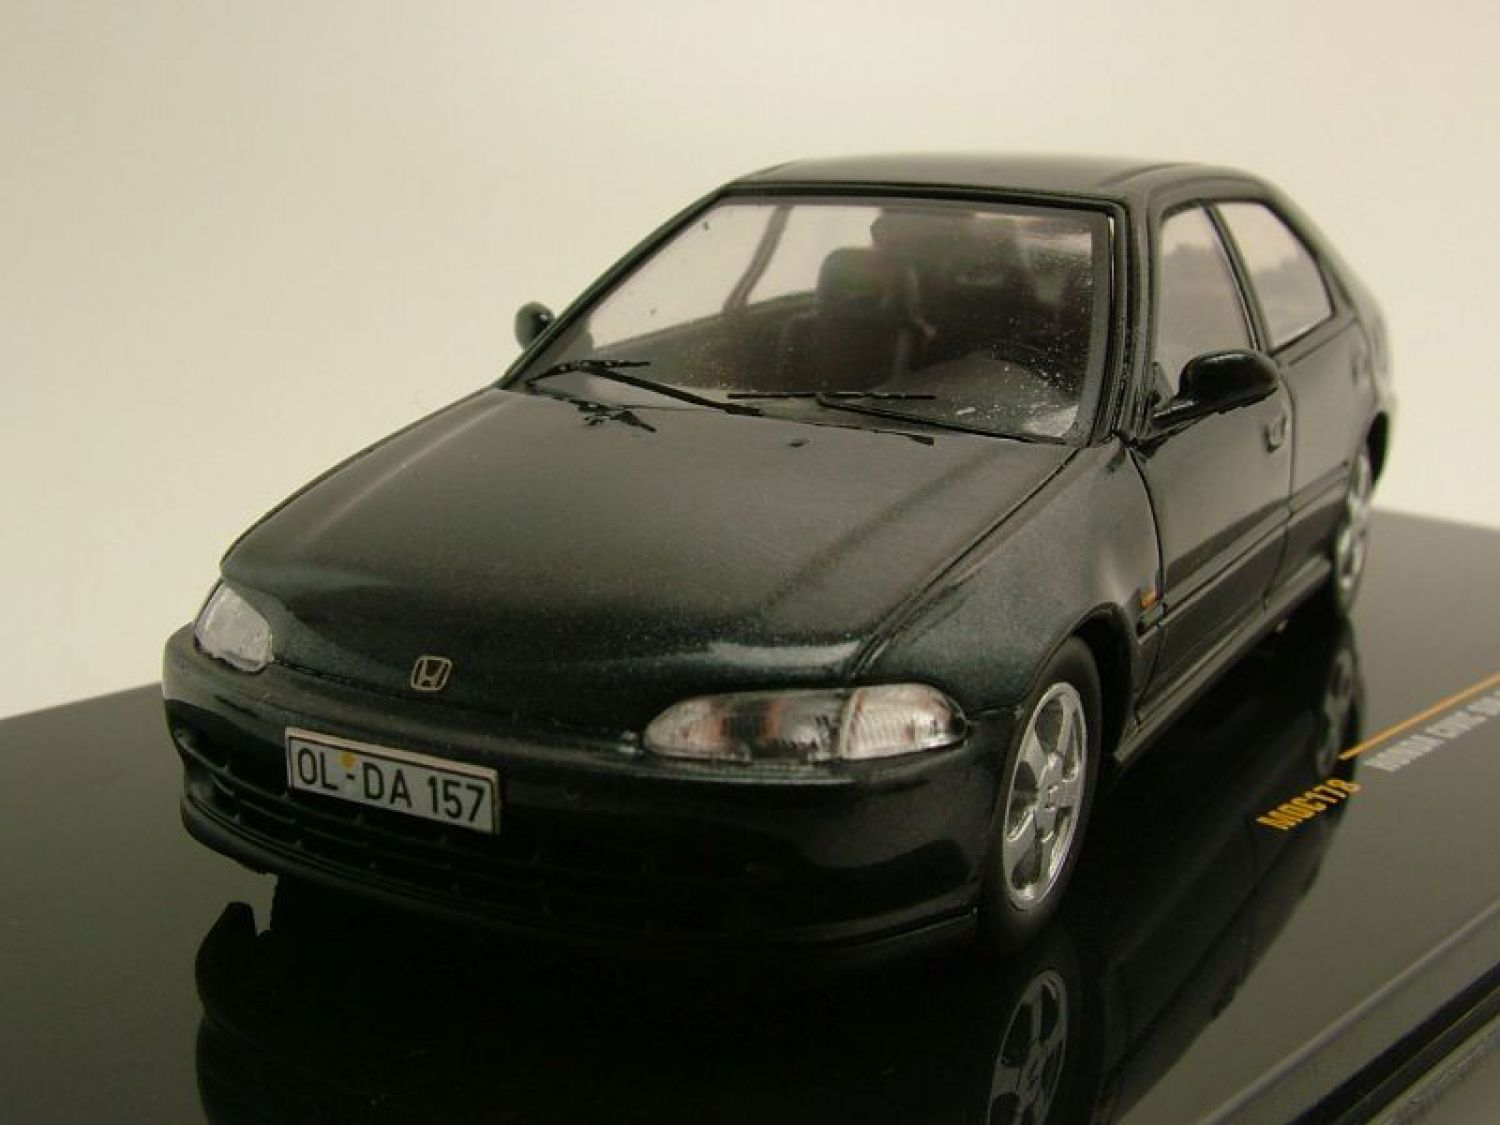 honda civic sir eg9 1992 dark grey metallic model car 1 43 ixo models ebay. Black Bedroom Furniture Sets. Home Design Ideas